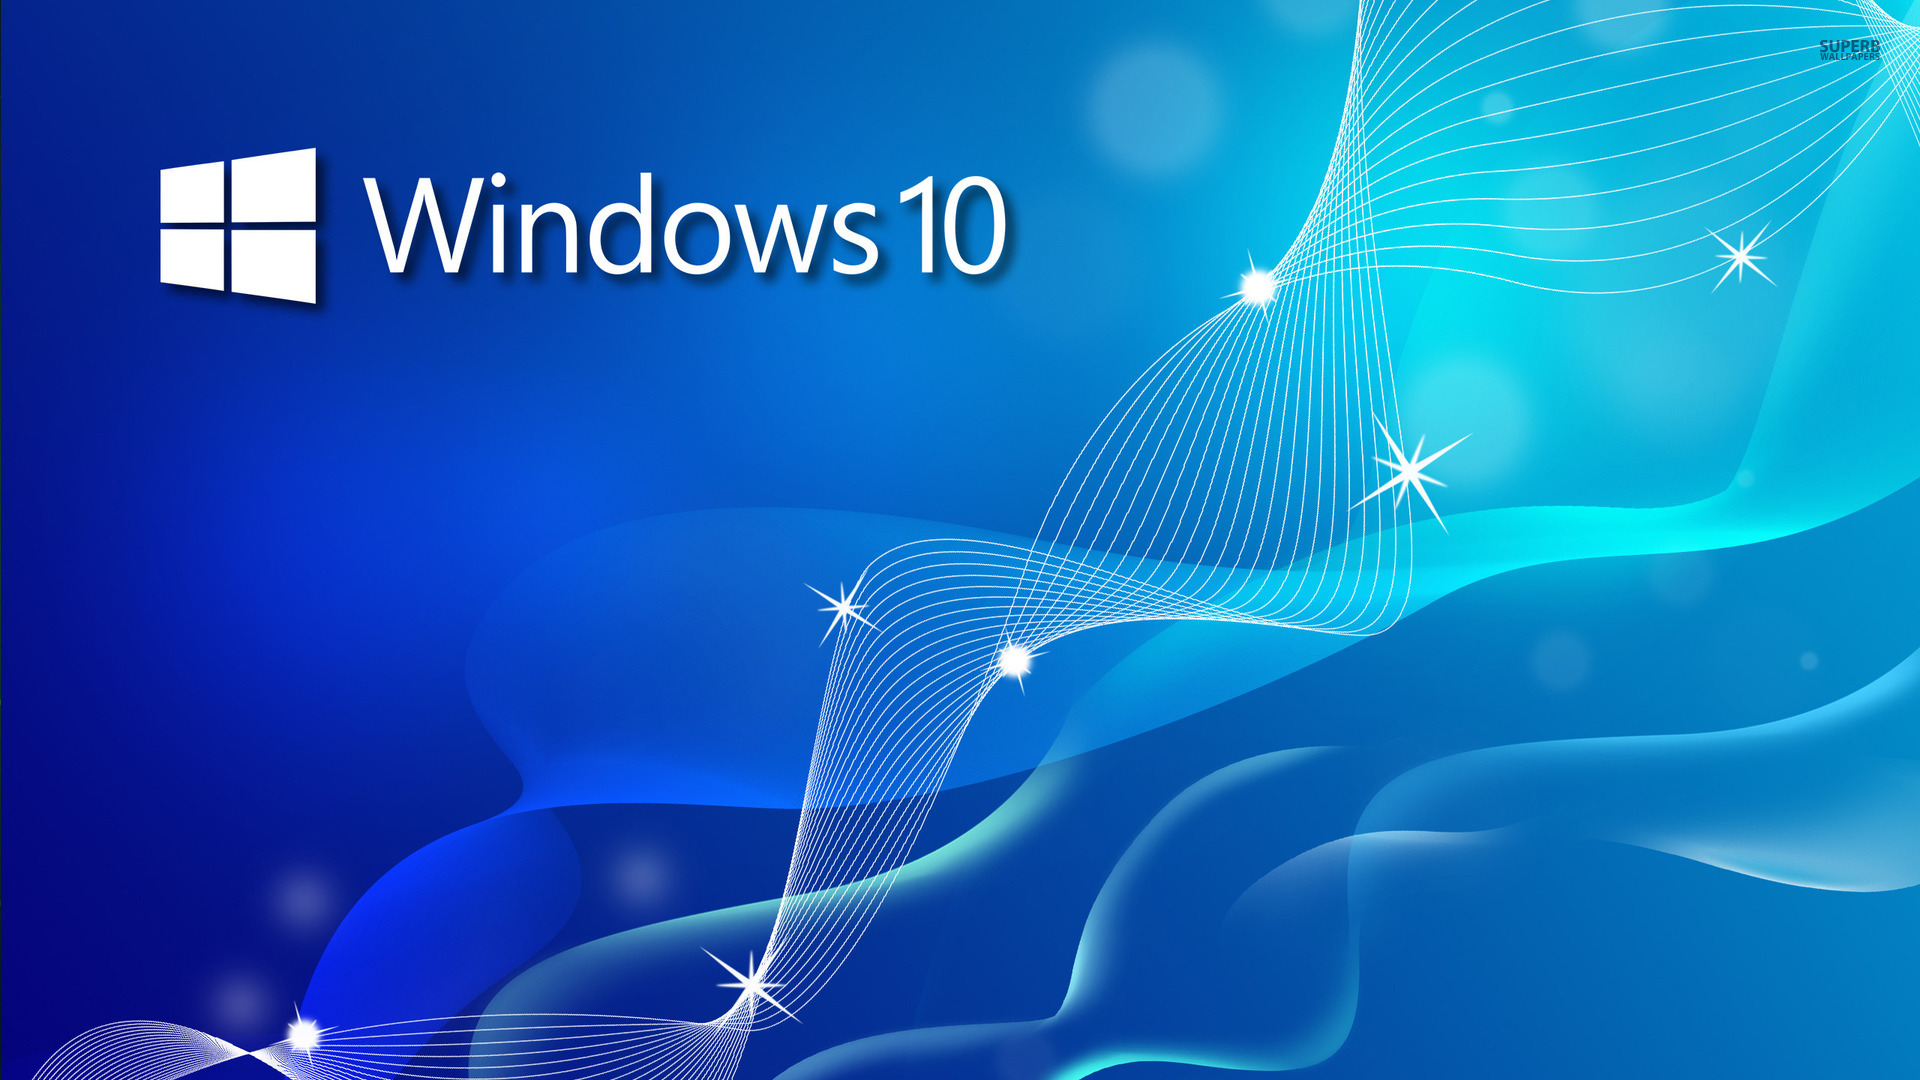 10 New Windows 8 Wallpaper Hd 3d For Desktop Full Hd 1920: Windows 10 Full HD Wallpaper